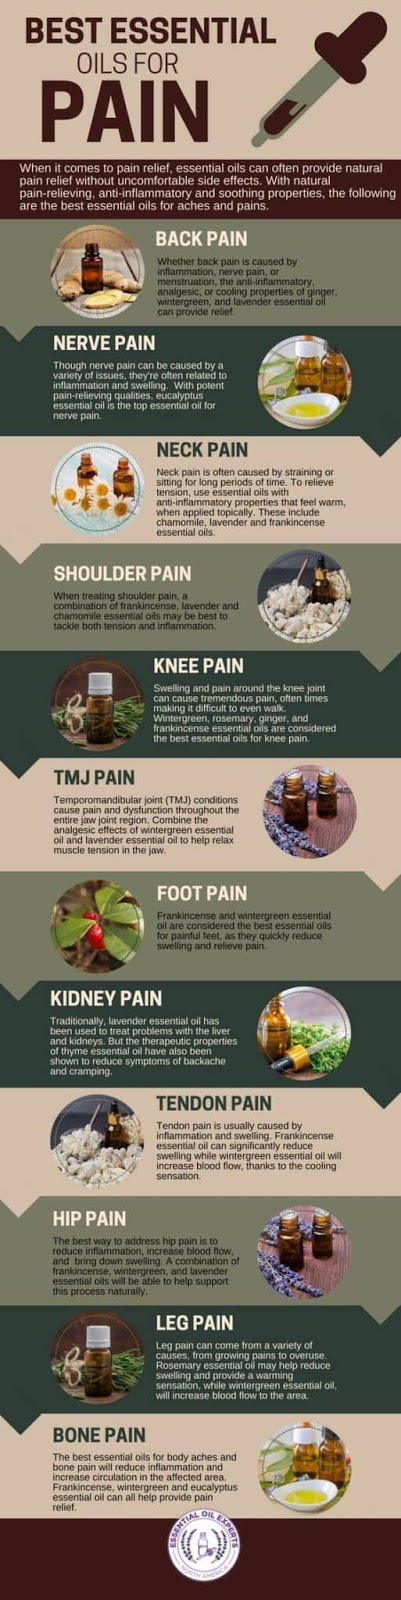 15+ Super Beneficial Essential Oil Life Hacks for Beginners | Best Essential Oils for Pain Relief | people have started seeking natural aids for relaxation and pain relief. And essential oils are front-runners as one of the best natural aids. #essentialoils #natural #pain